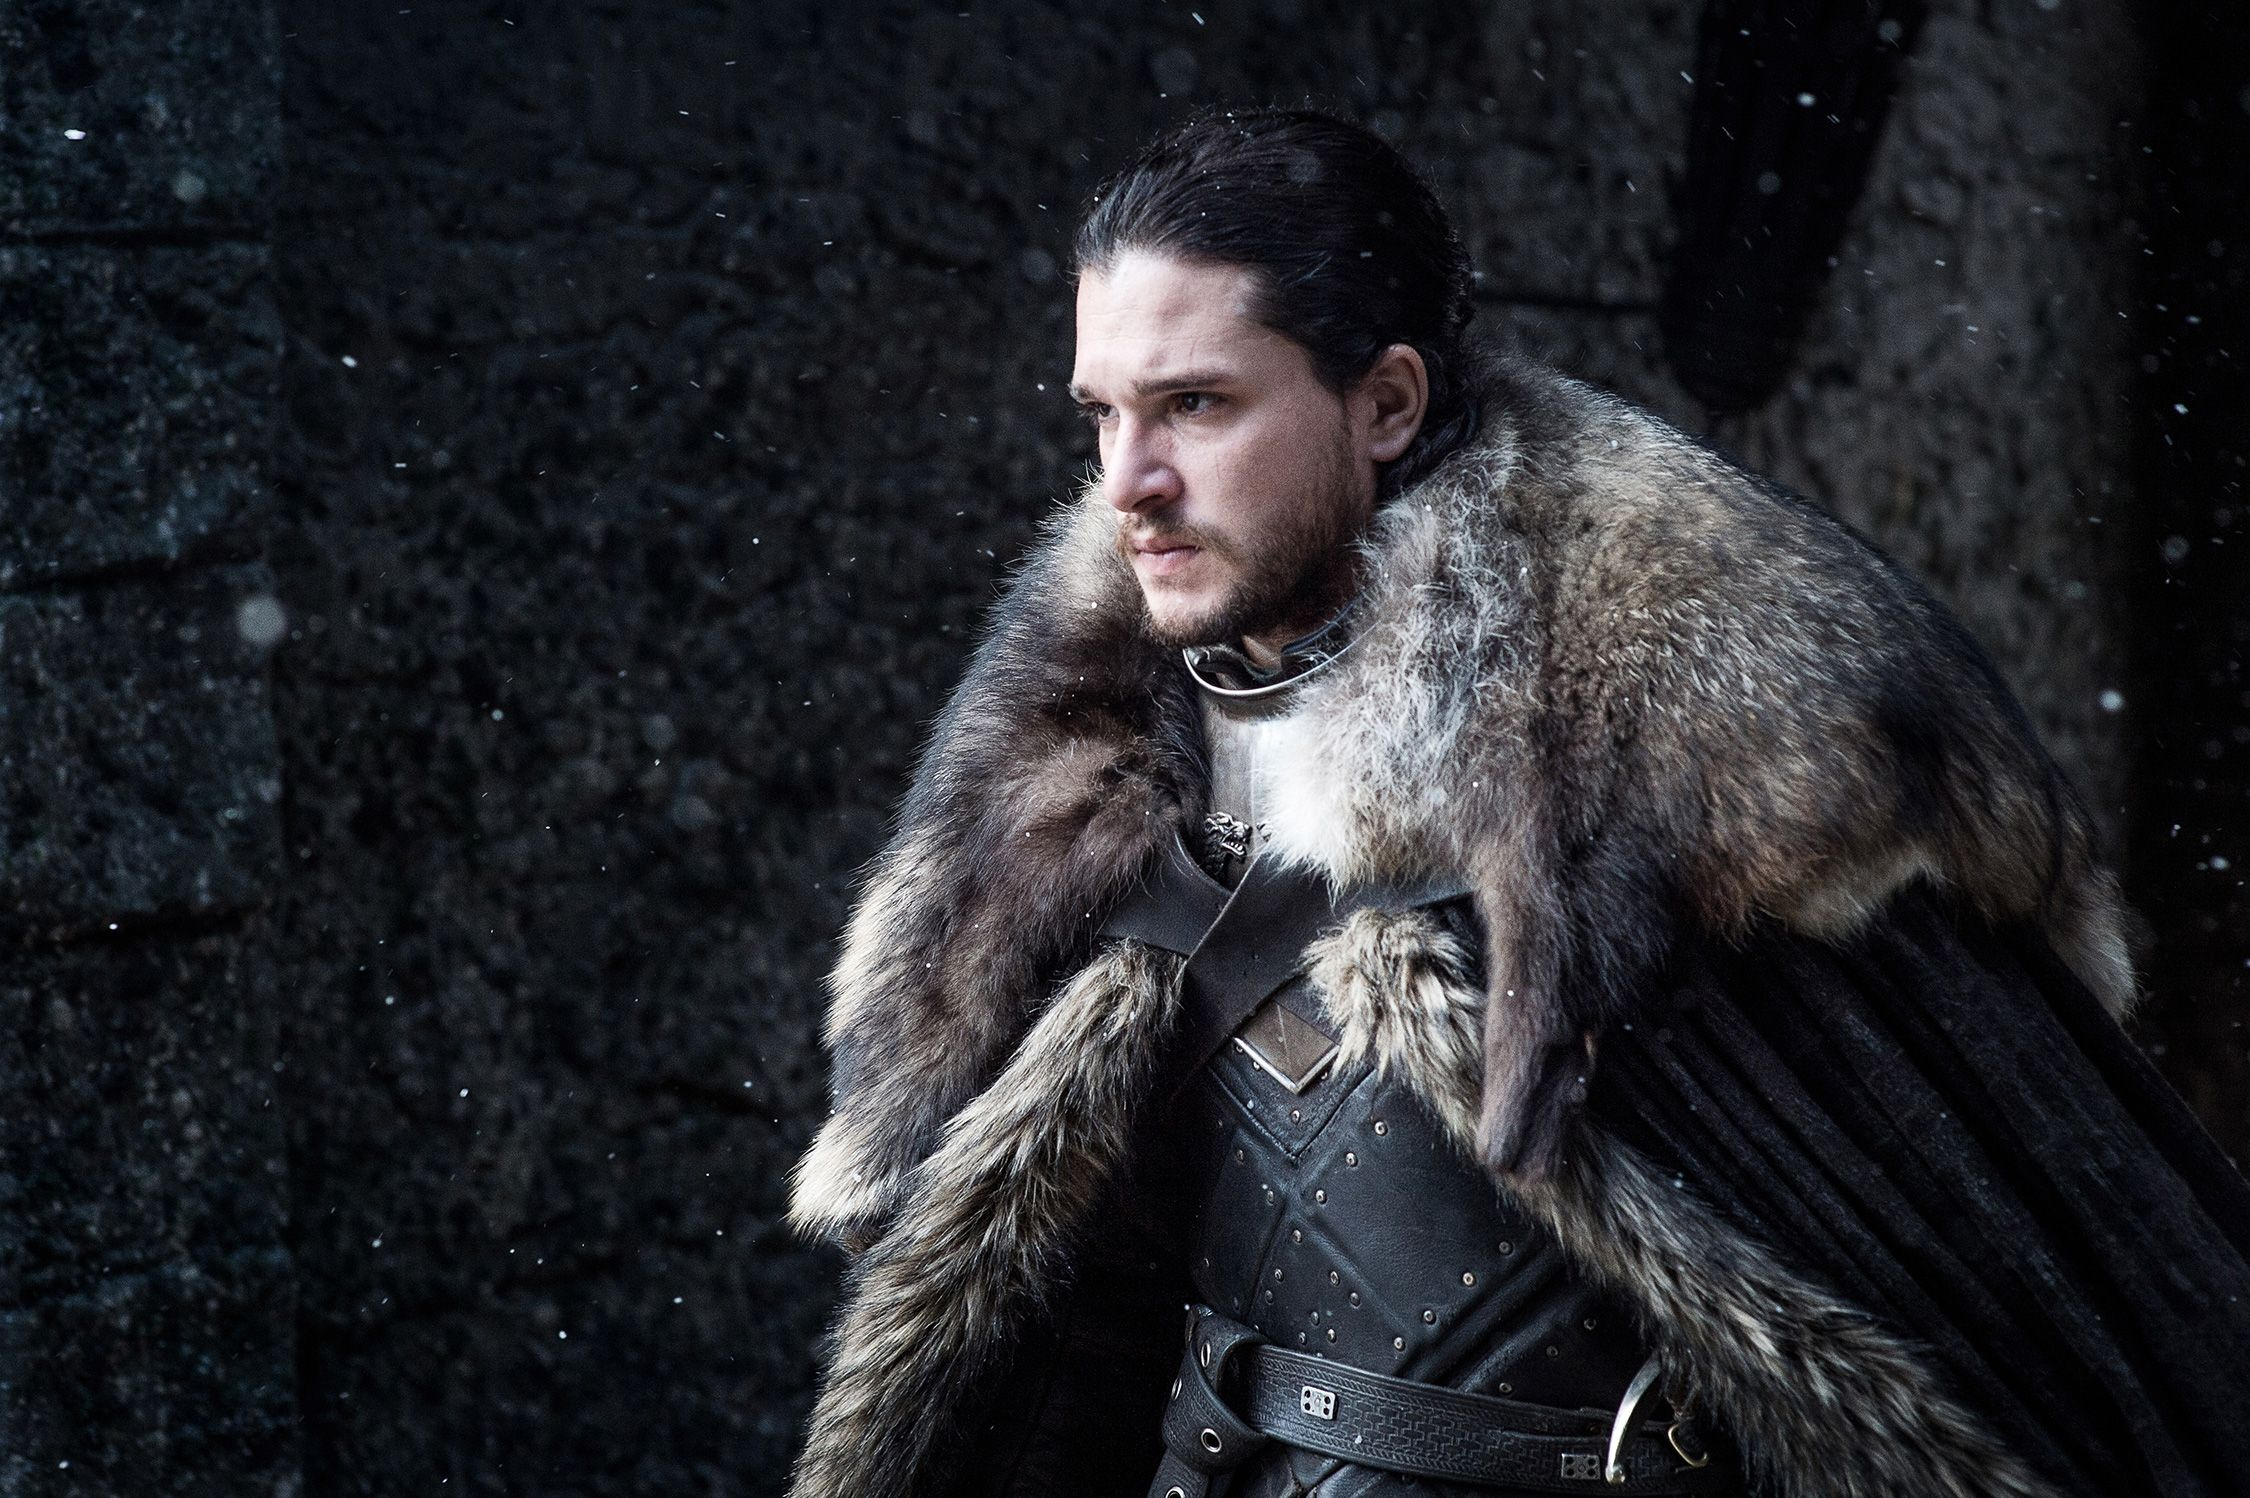 wallpapers games of thrones, game of thrones season 7 wallpaper